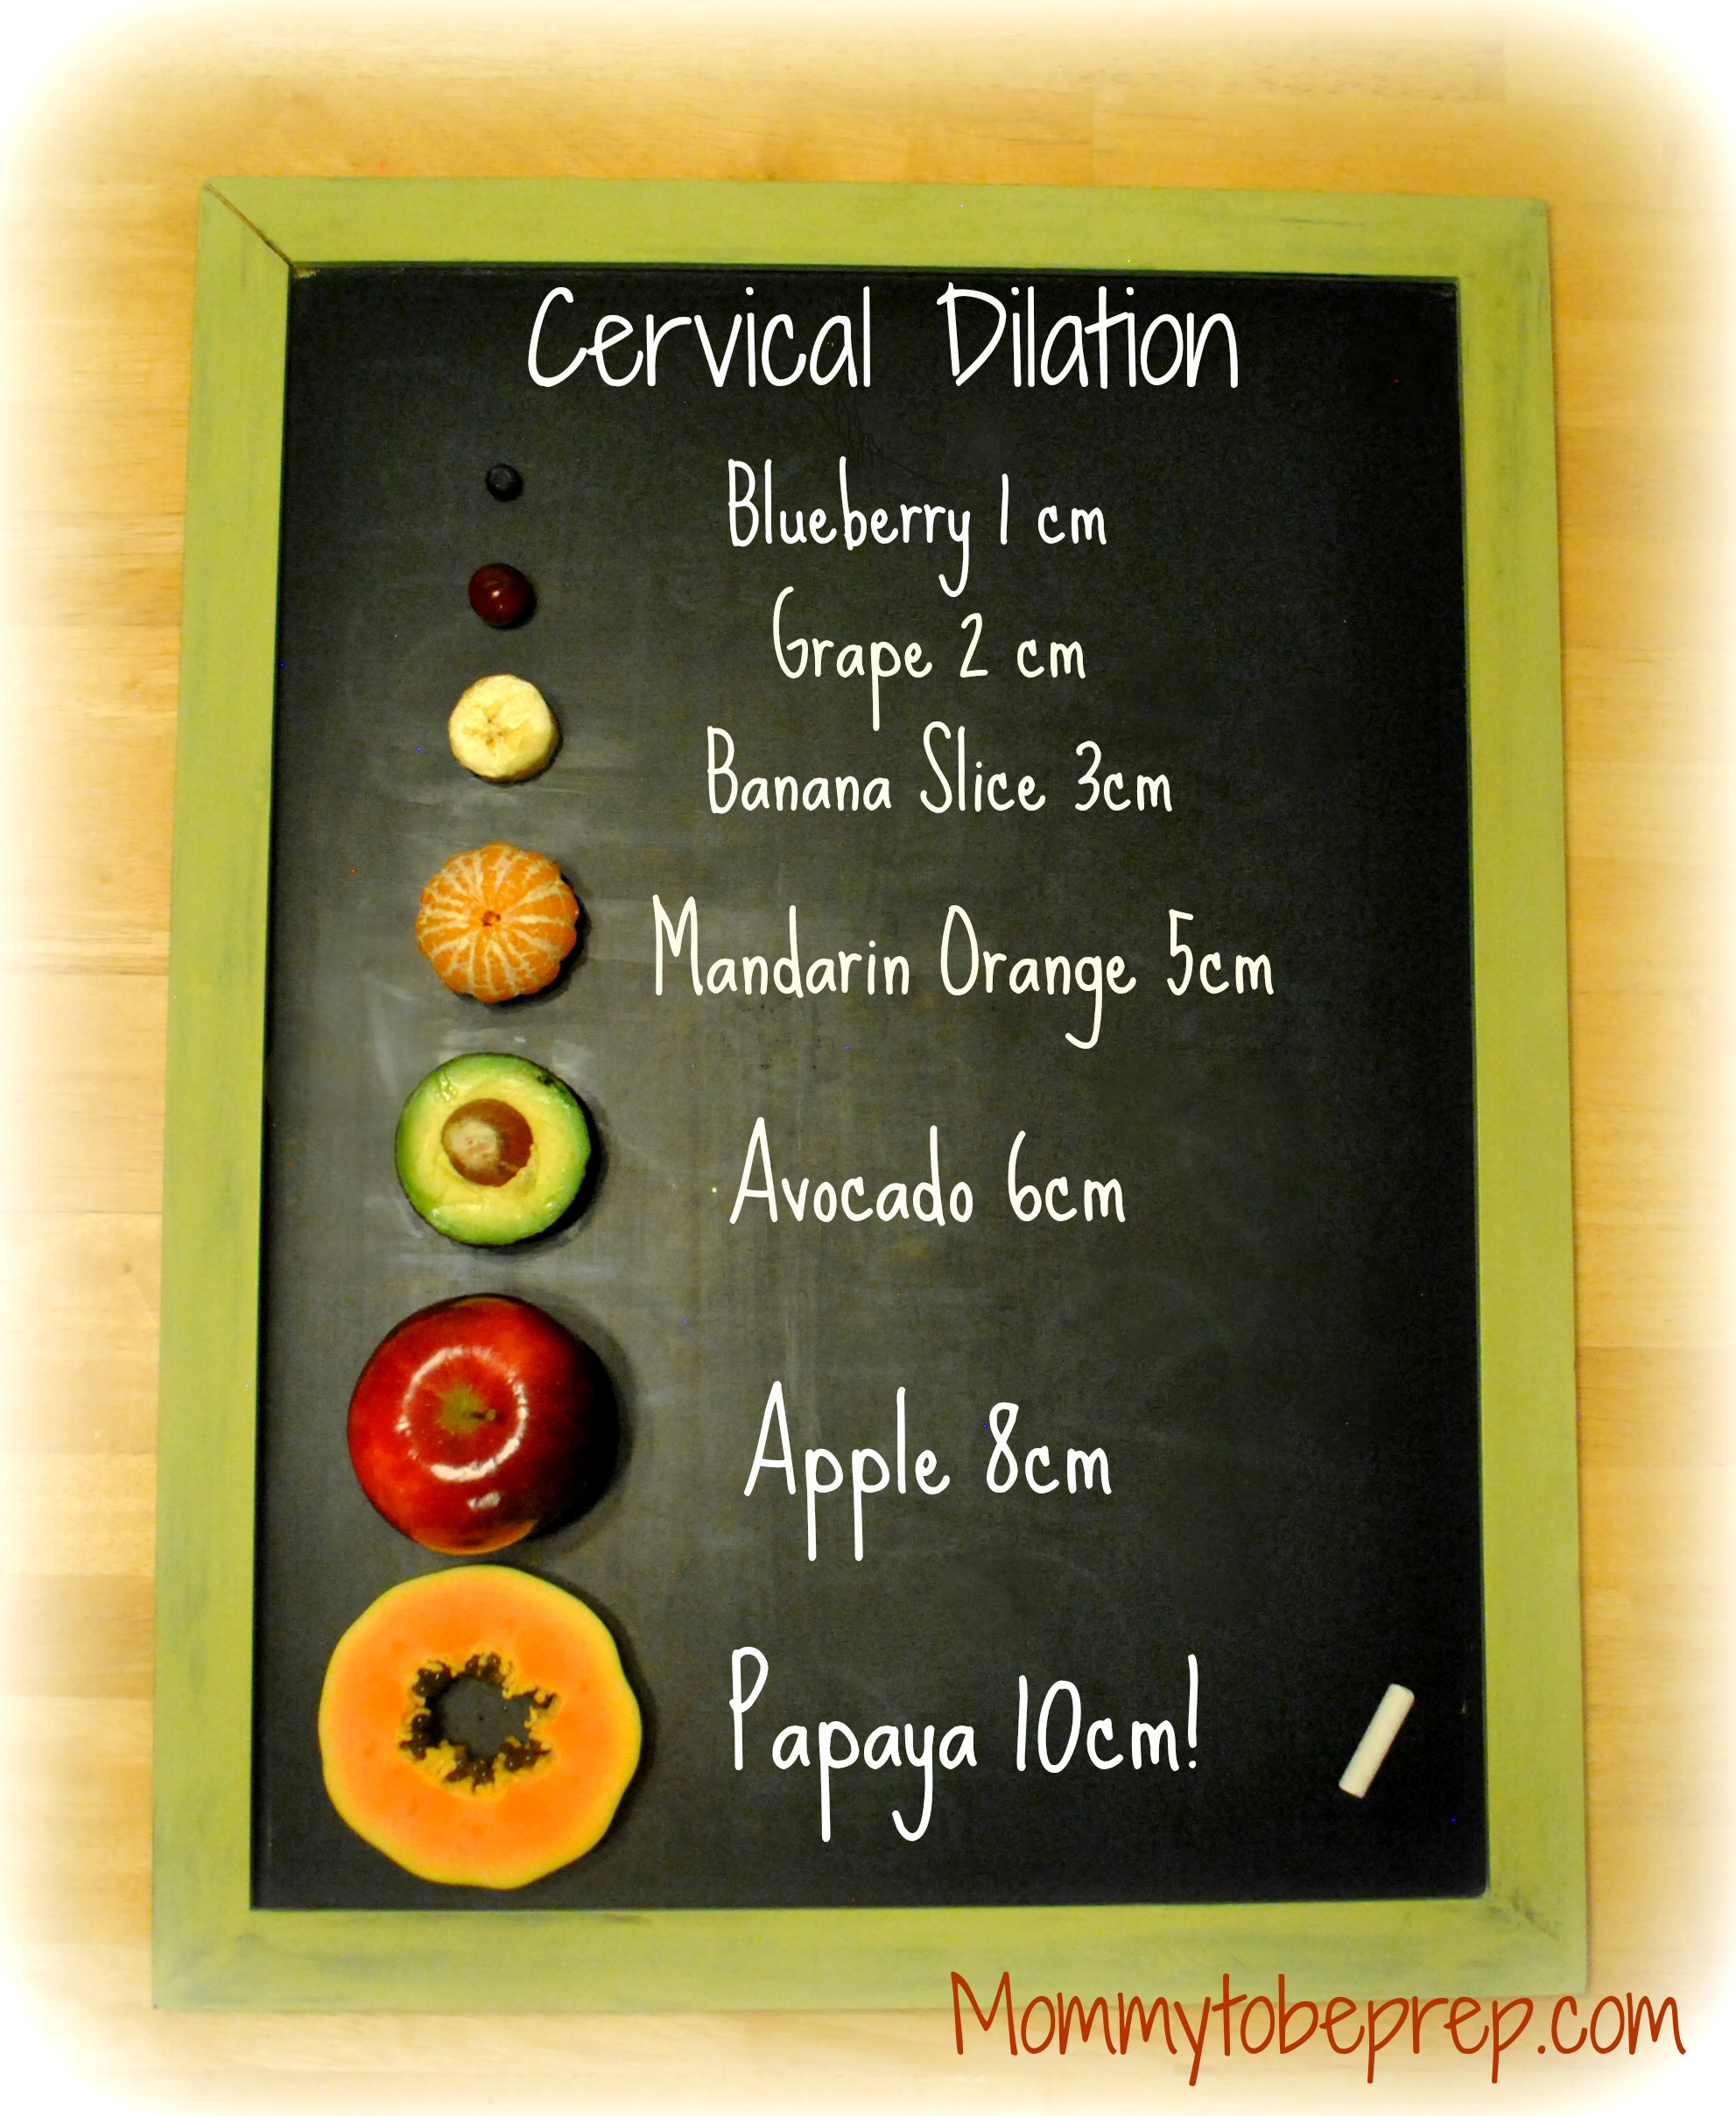 Cervical Dilation Chart For The Visual Learner